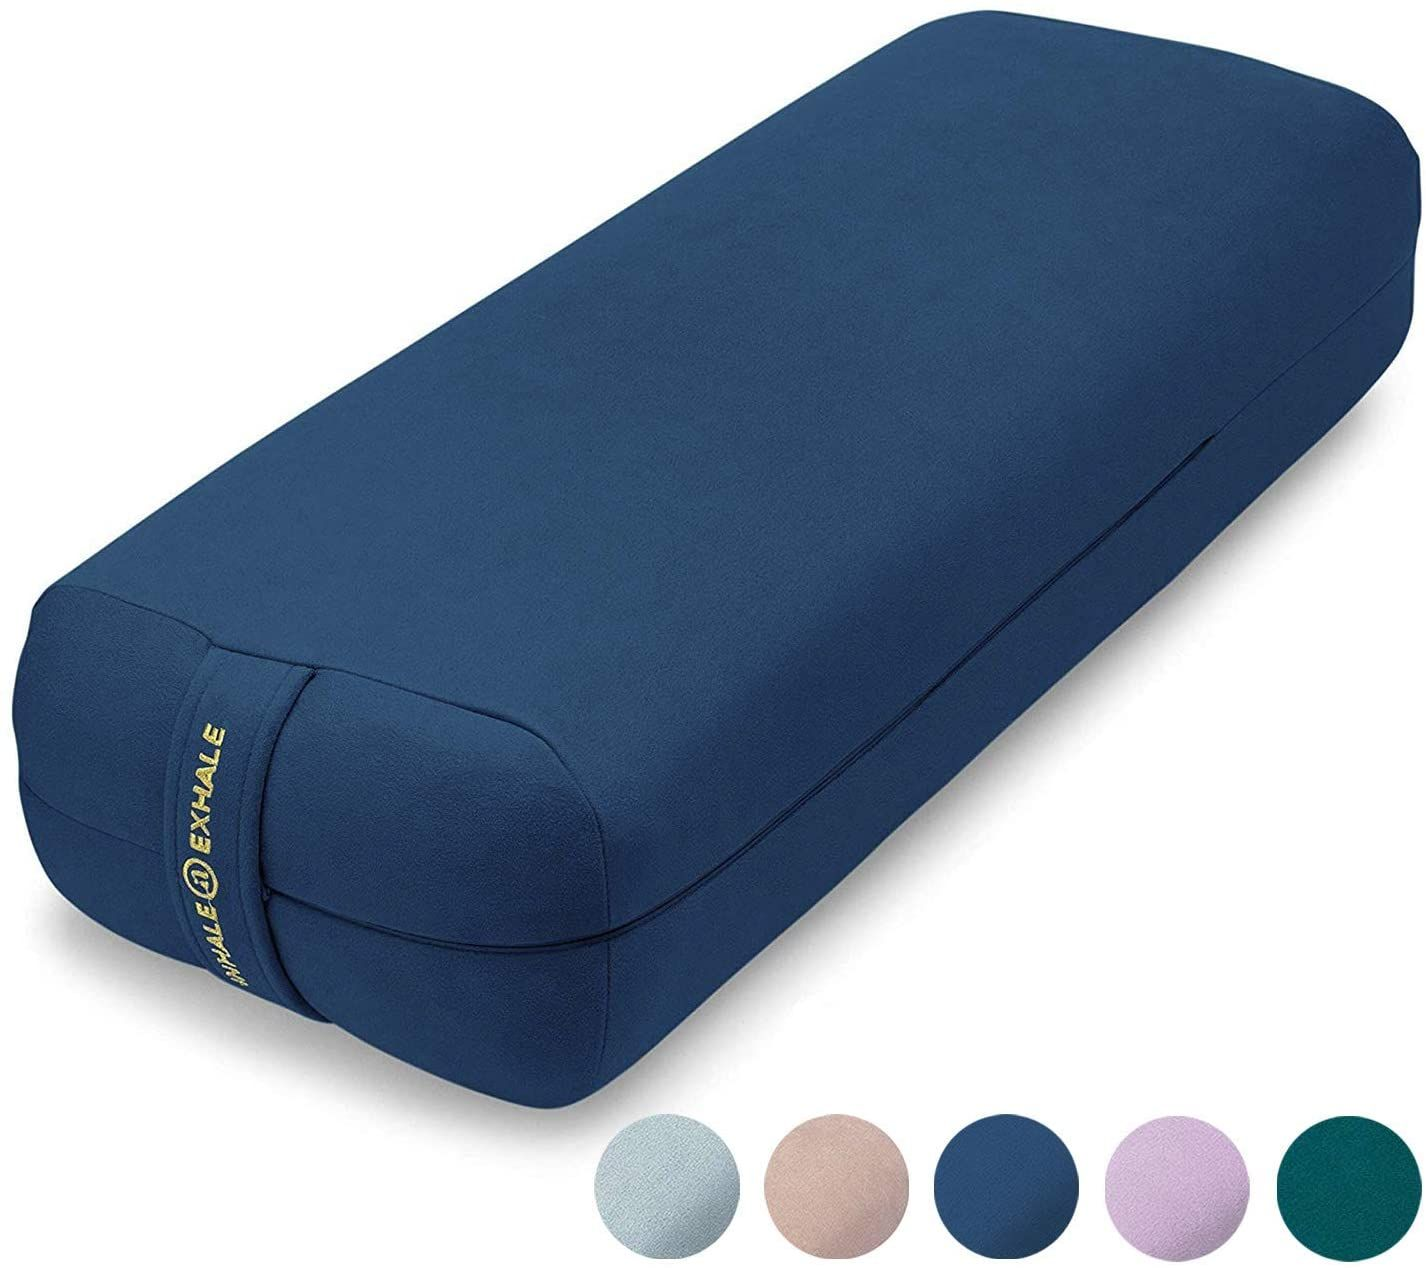 gifts for yoga lovers-6.jpg